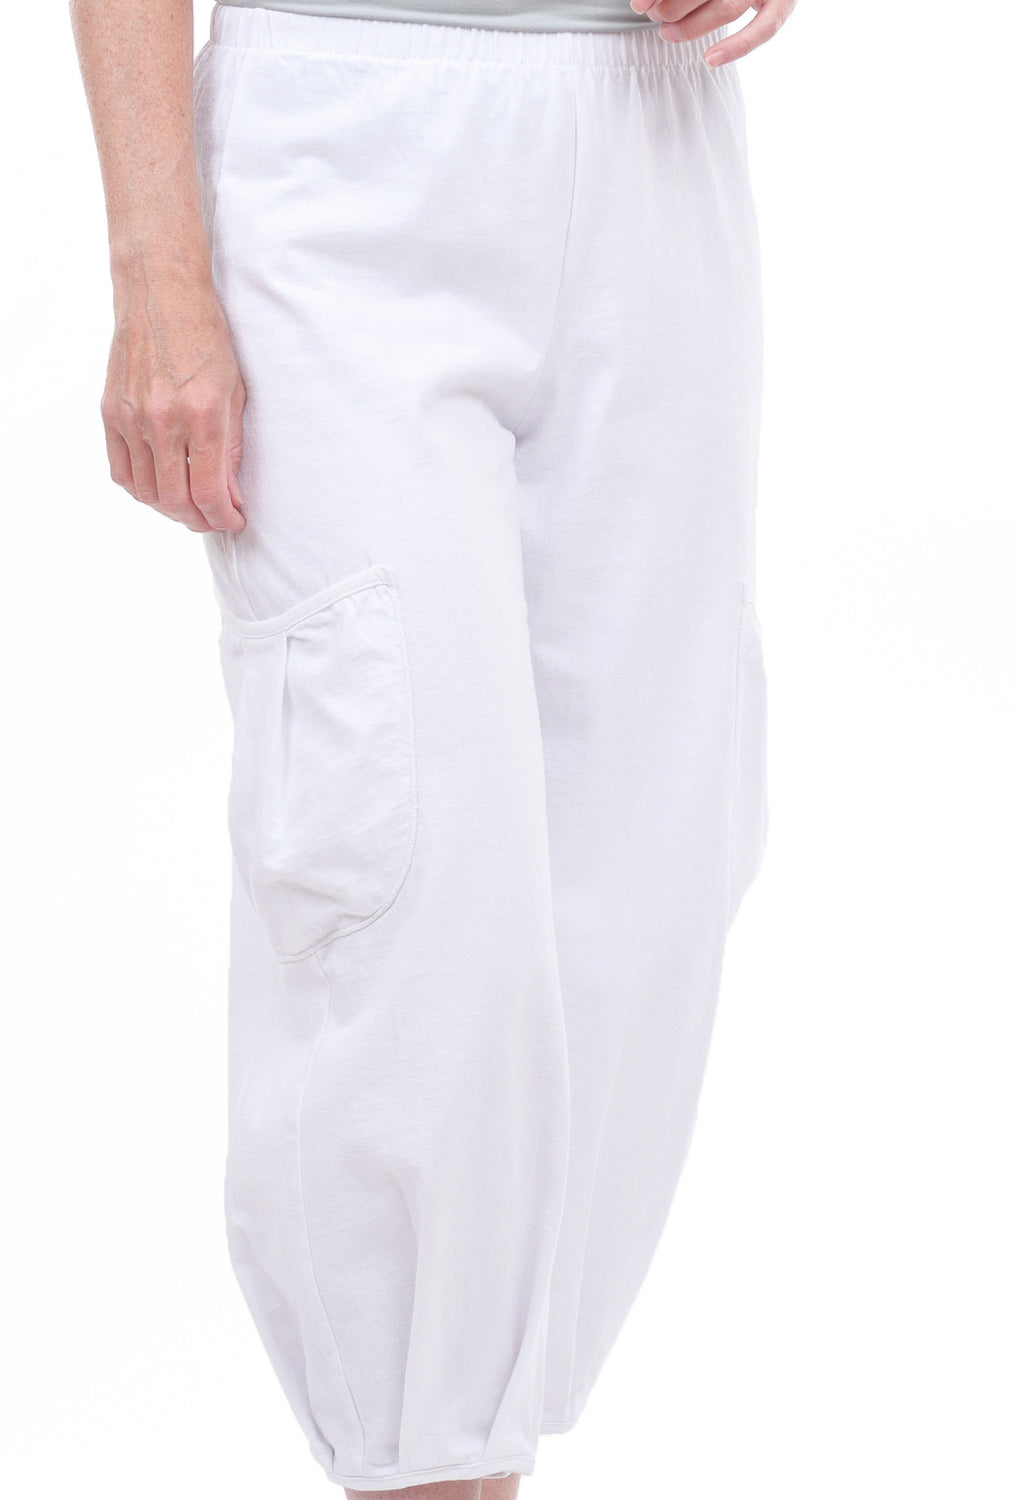 Fenini Side Pocket Cropped Pants, White